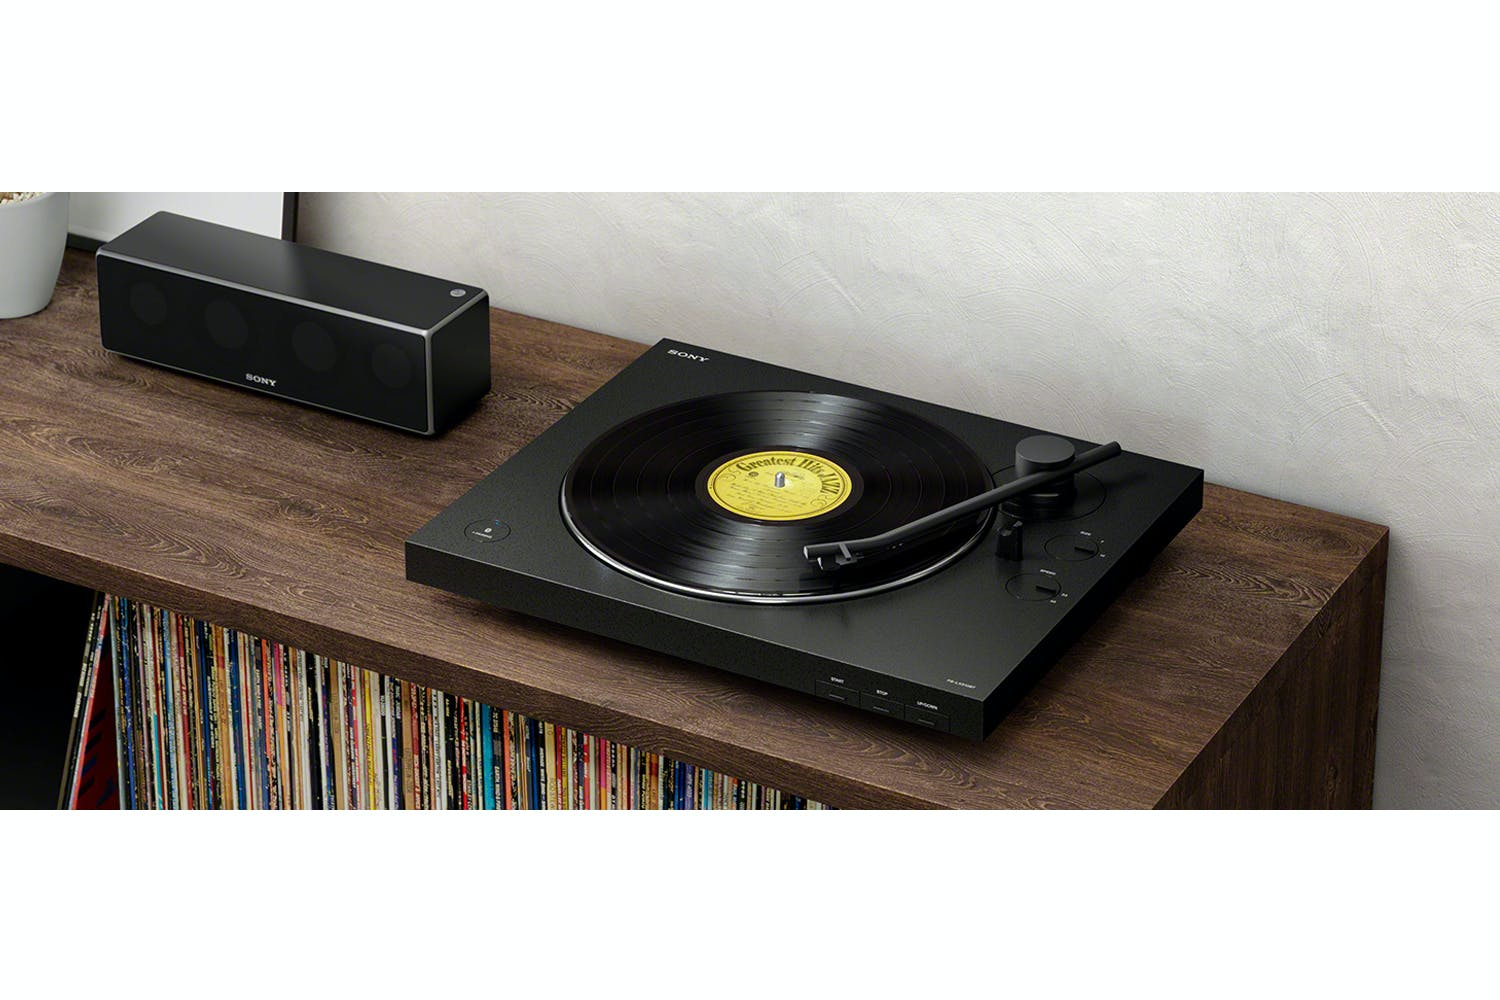 Sony Bluetooth Turntable Vinyl Record Player| Black